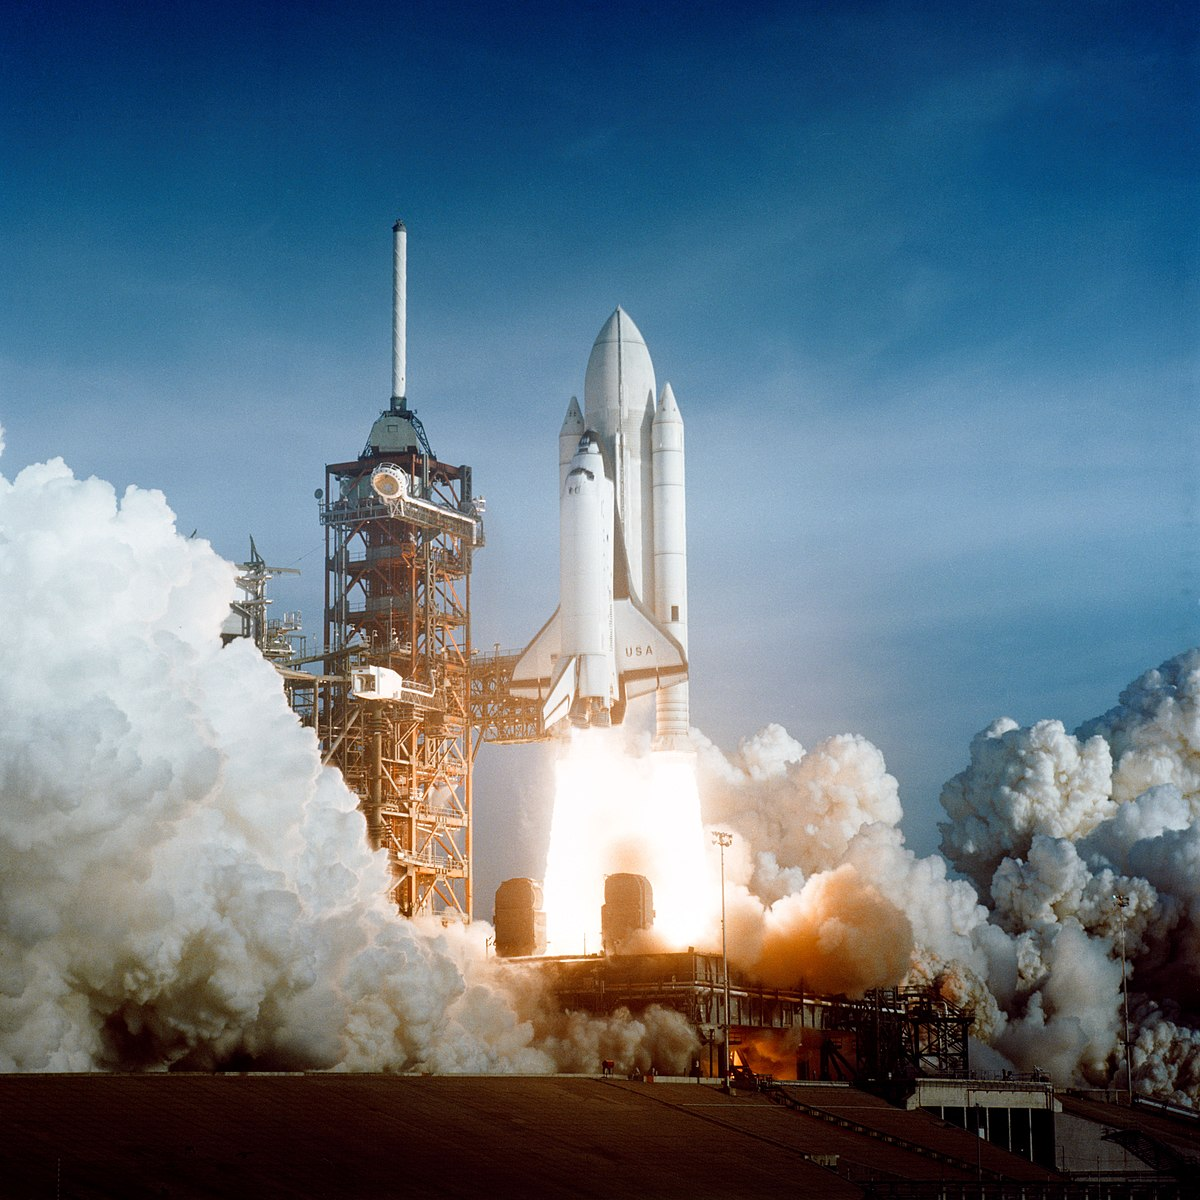 S81-30498 (12 April 1981) --- After six years of silence, the thunder of manned spaceflight is heard again, as the successful launch of the first space shuttle ushers in a new concept in utilization of space. The April 12, 1981 launch, at Pad 39A, just seconds past 7 a.m., carries astronaut John Young and Robert Crippen into an Earth-orbital mission scheduled to last for 54 hours, ending with unpowered landing at Edwards Air Force Base in California. STS-1, the first in a series of shuttle vehicles planned for the Space Transportation System, utilizes reusable launch and return components. Photo credit: NASA or National Aeronautics and Space Administration